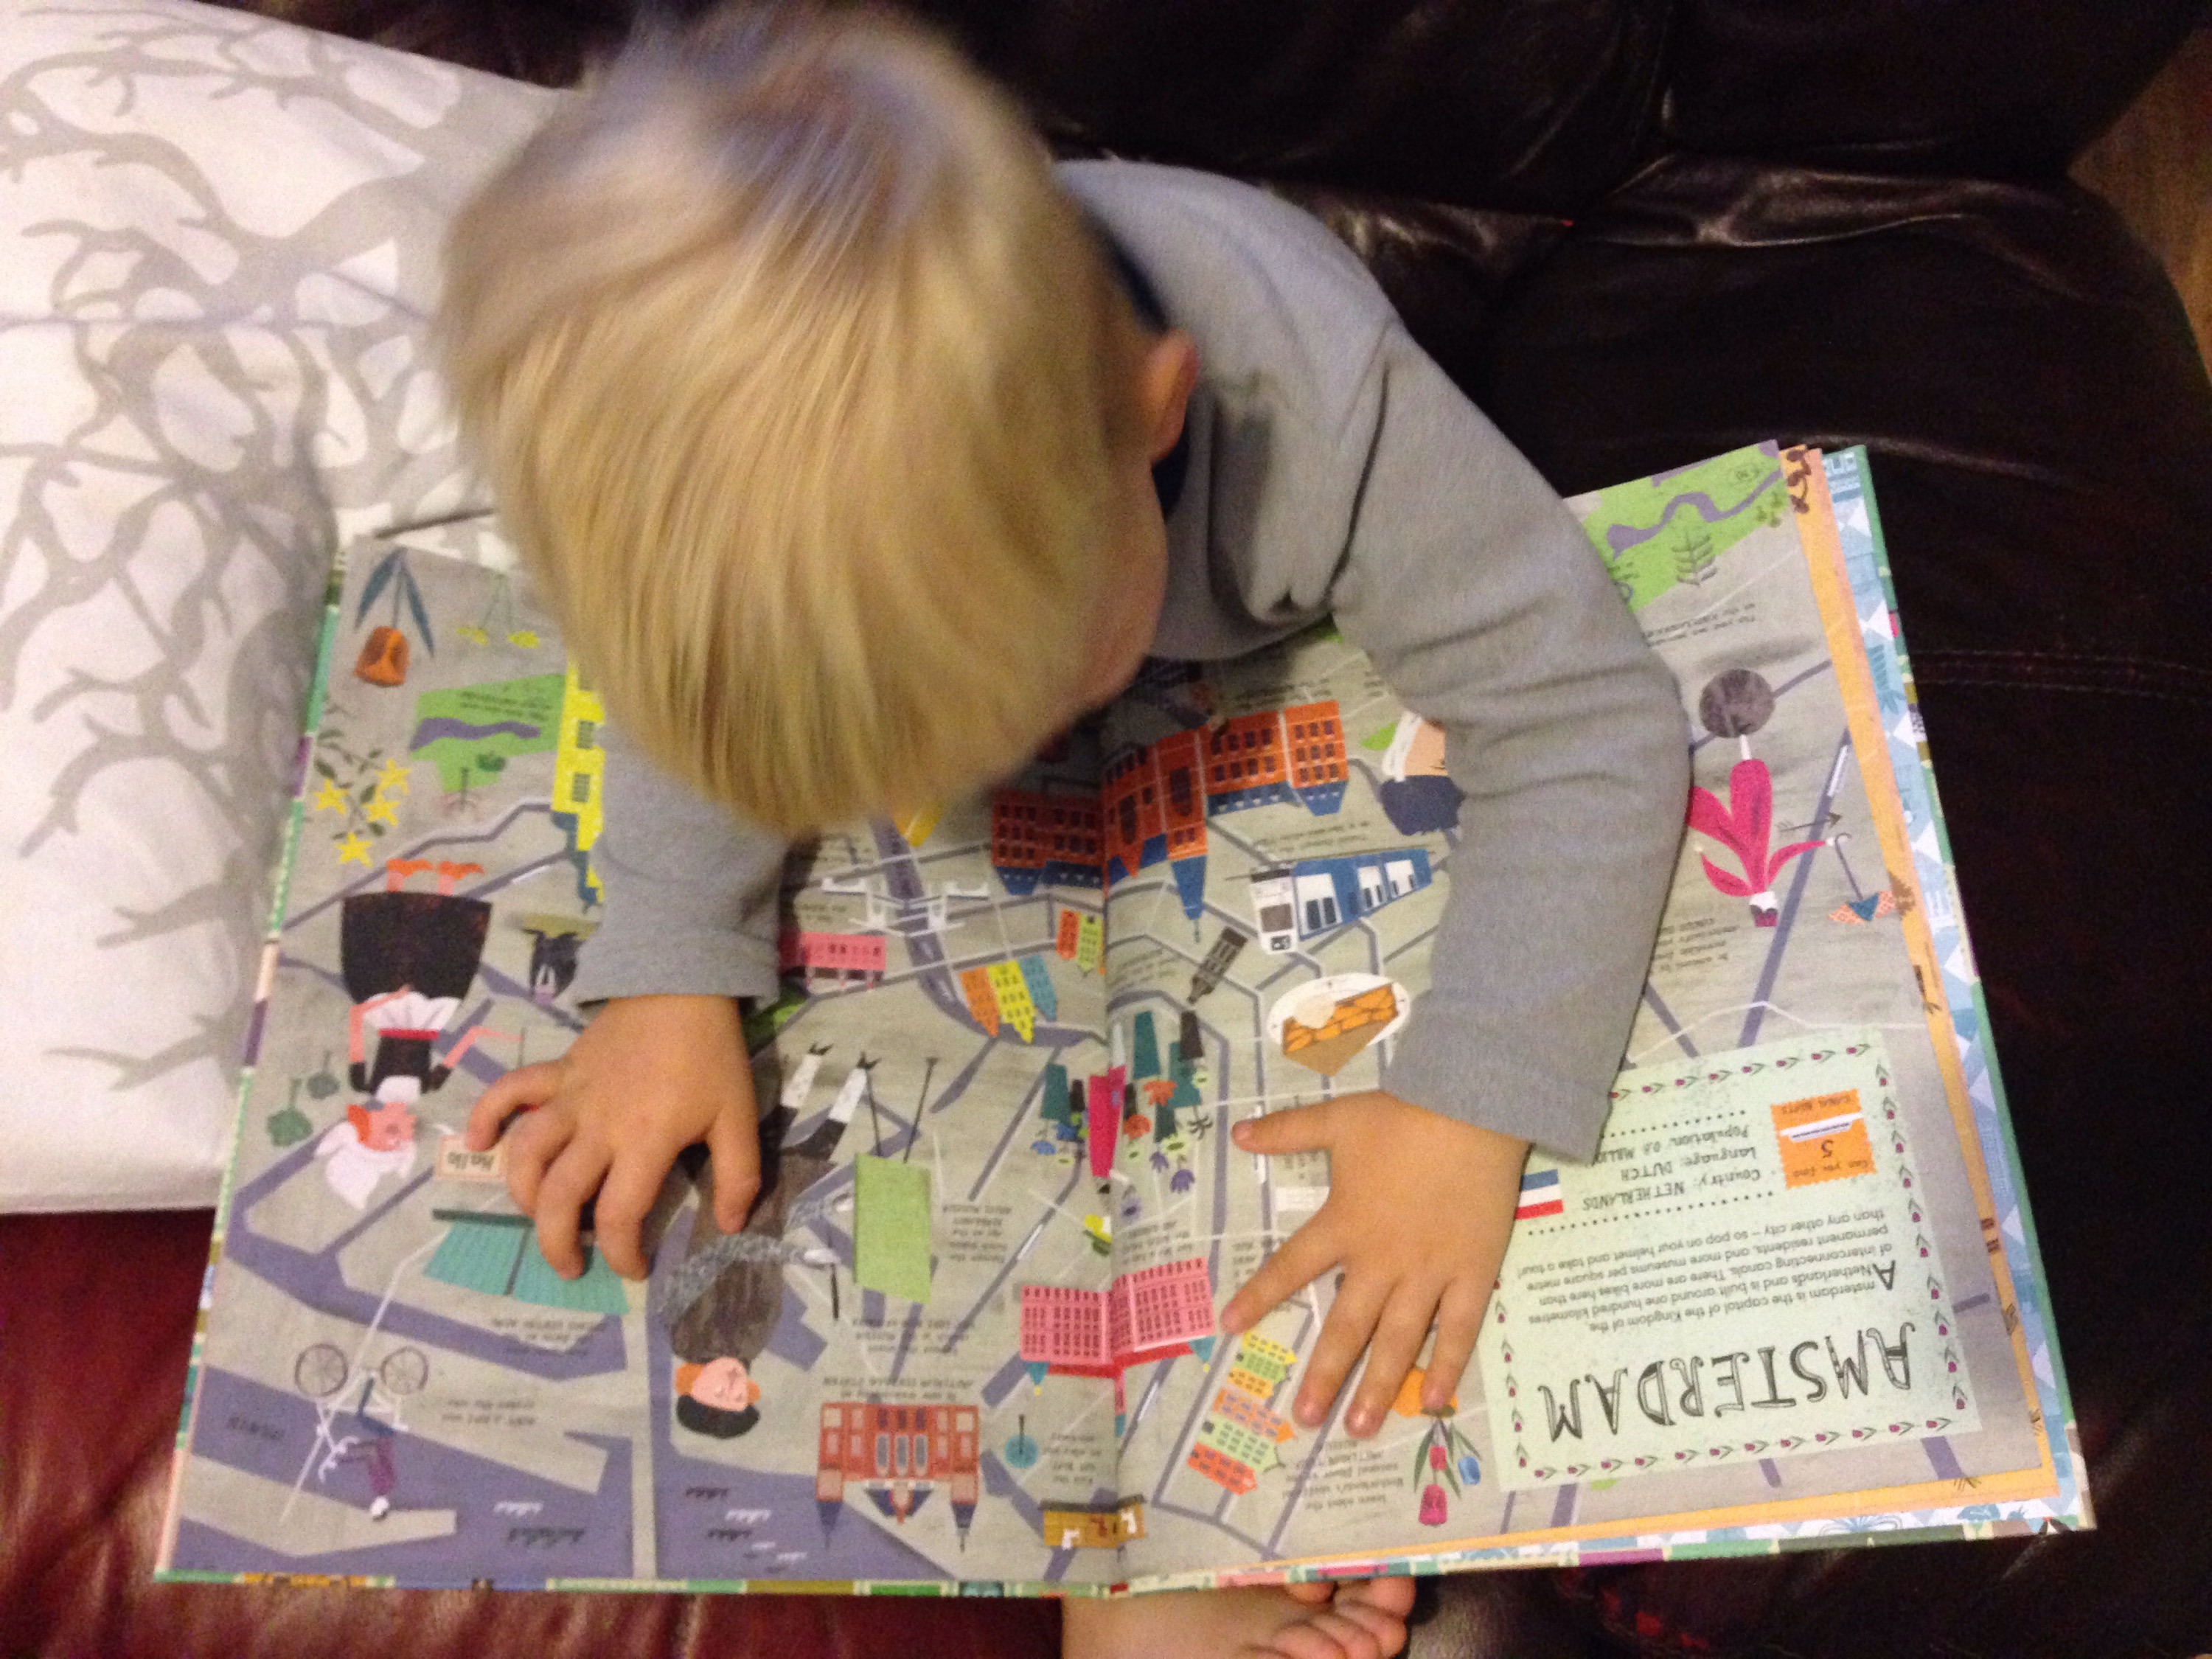 City Atlas - a book of maps illustrated by Martin Haake - reviewed on babyfoote.com